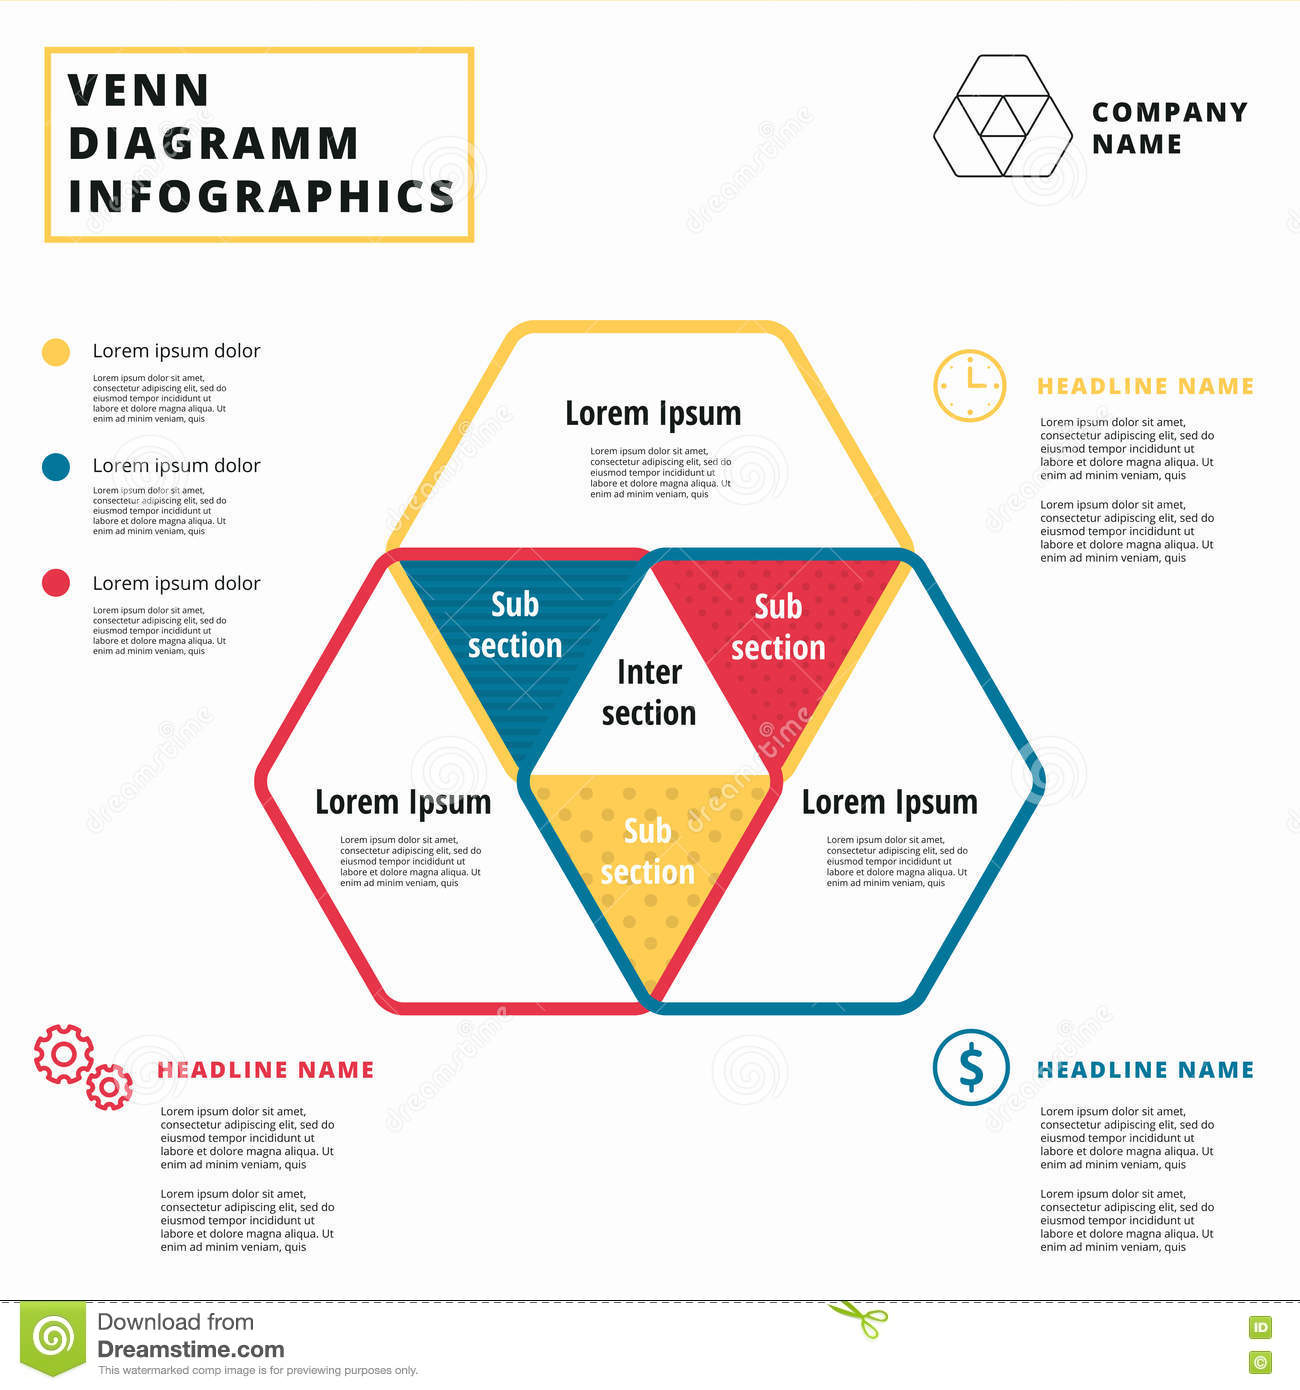 hight resolution of venn diagram vector circles infographics template design overlapping shapes for set or logic graphic illustration